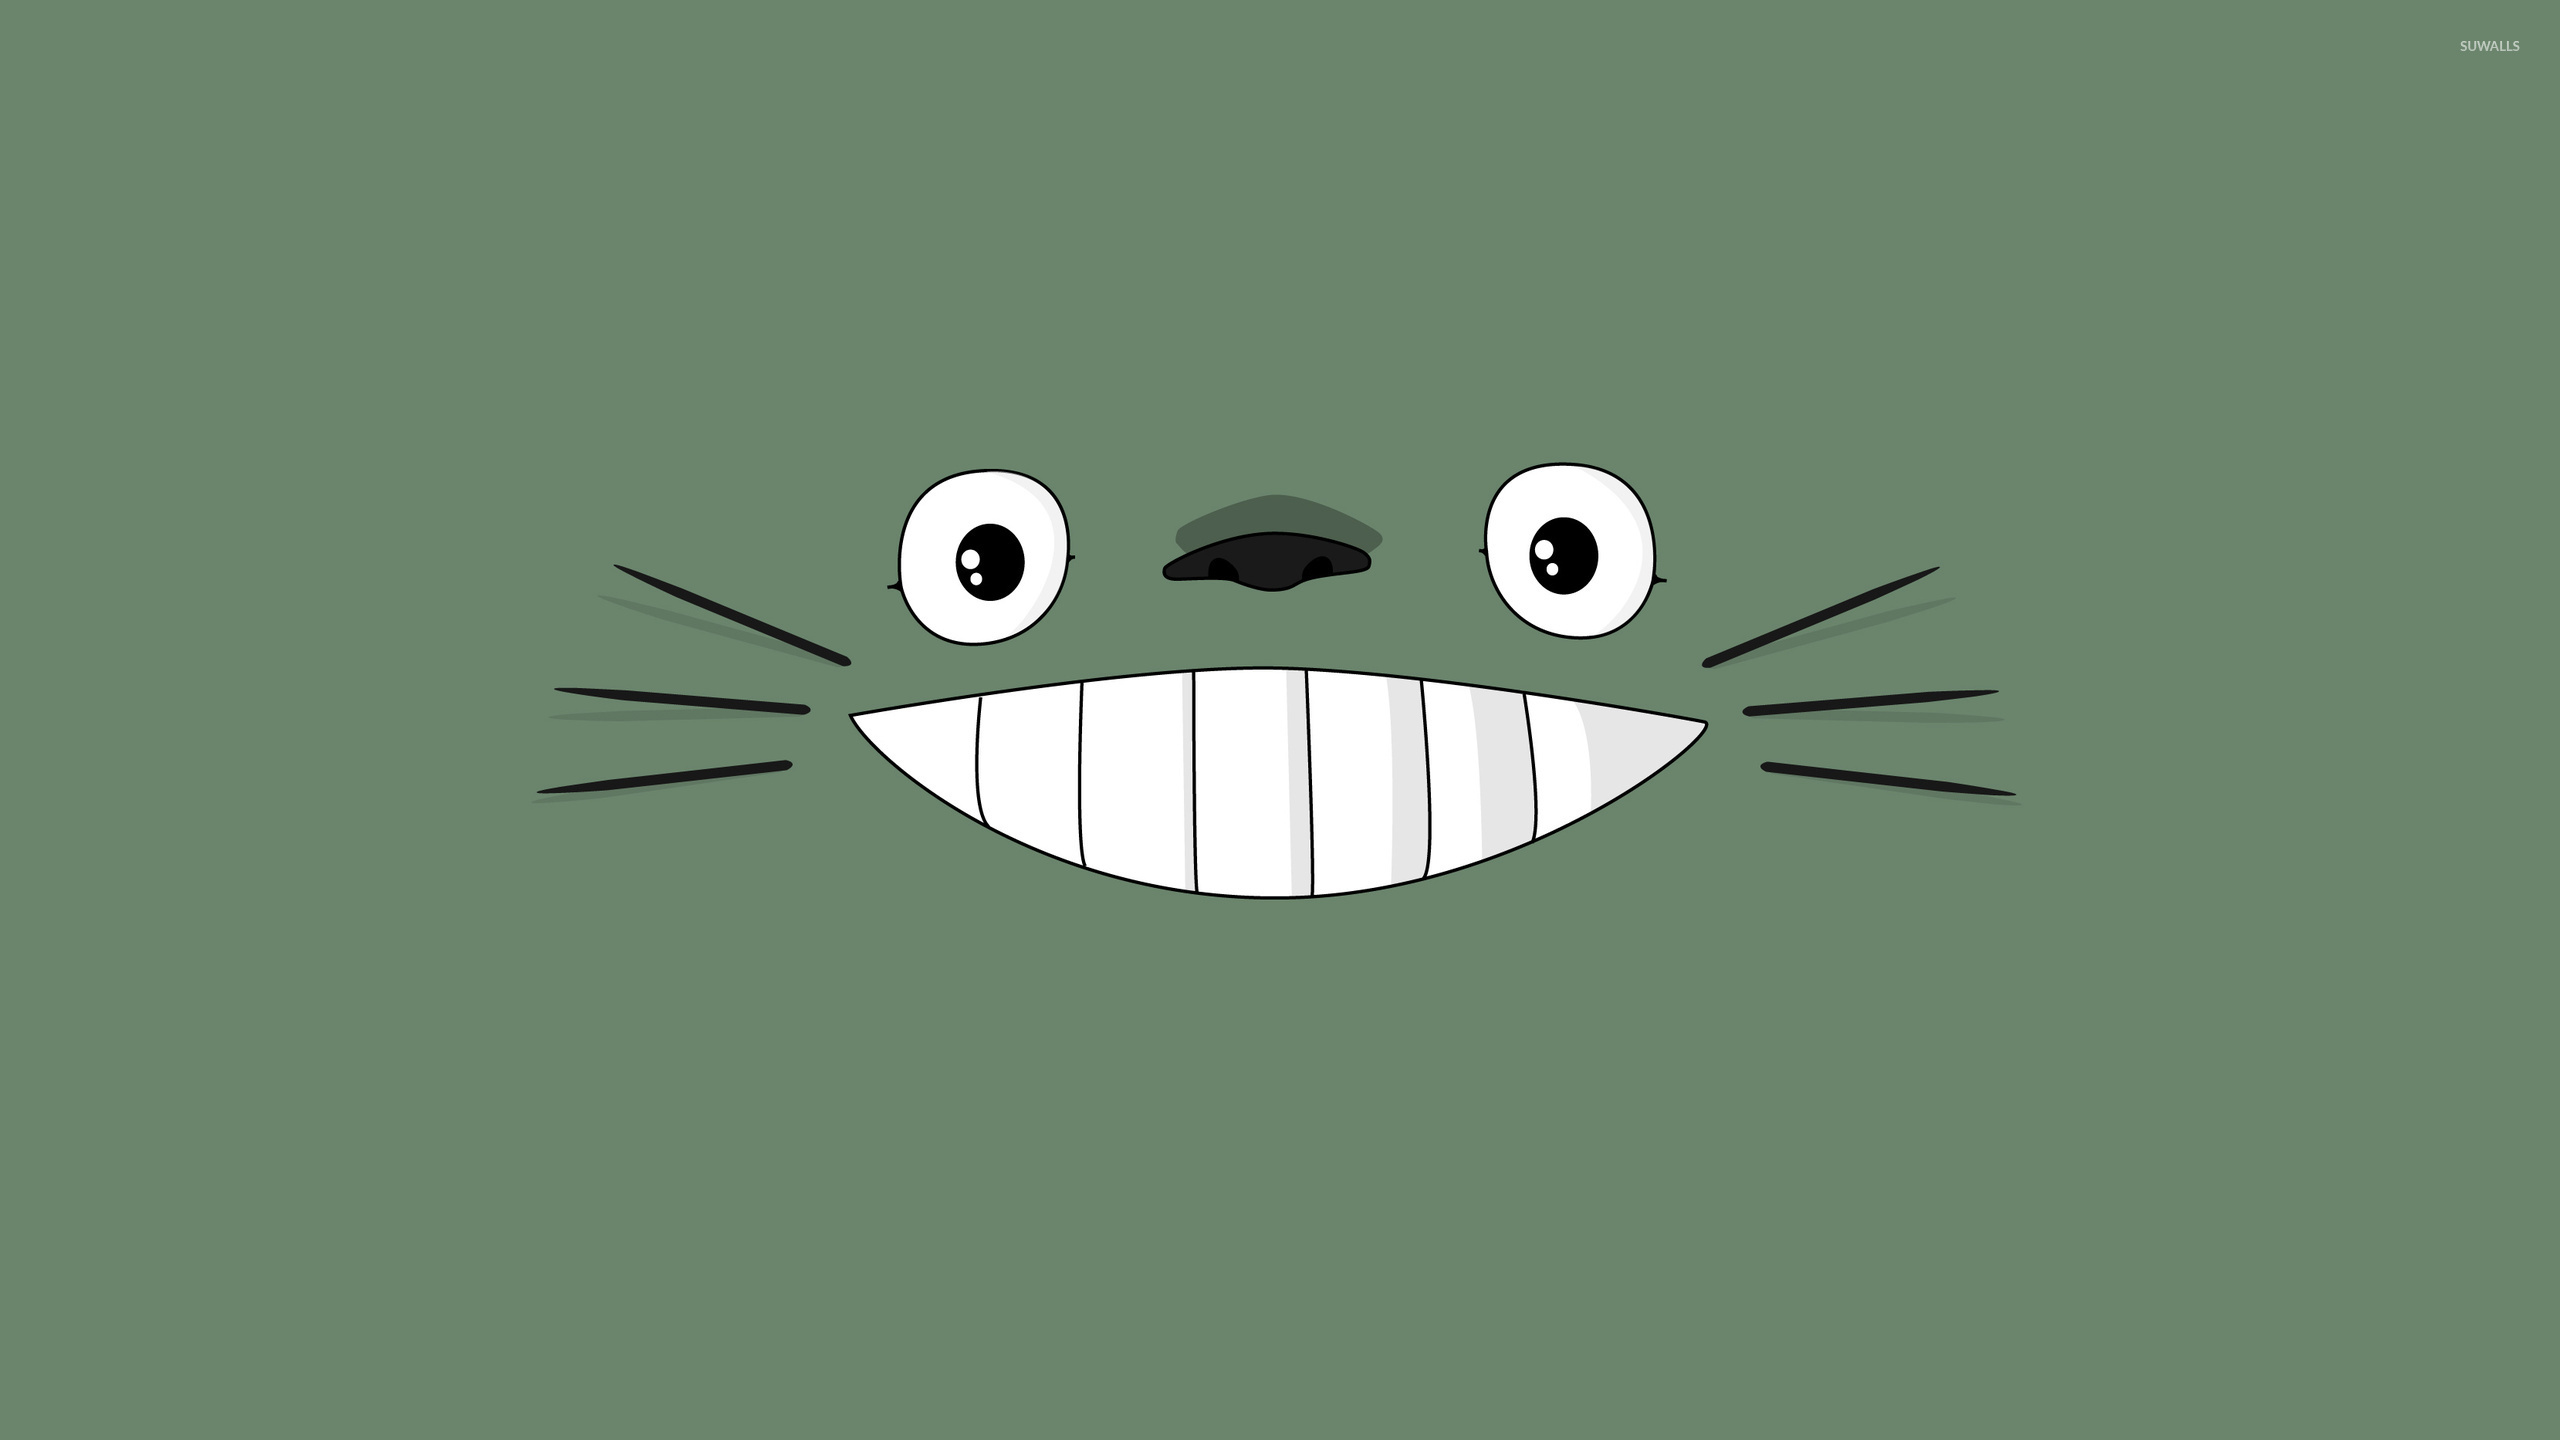 Totoro wallpaper Anime wallpapers 33207